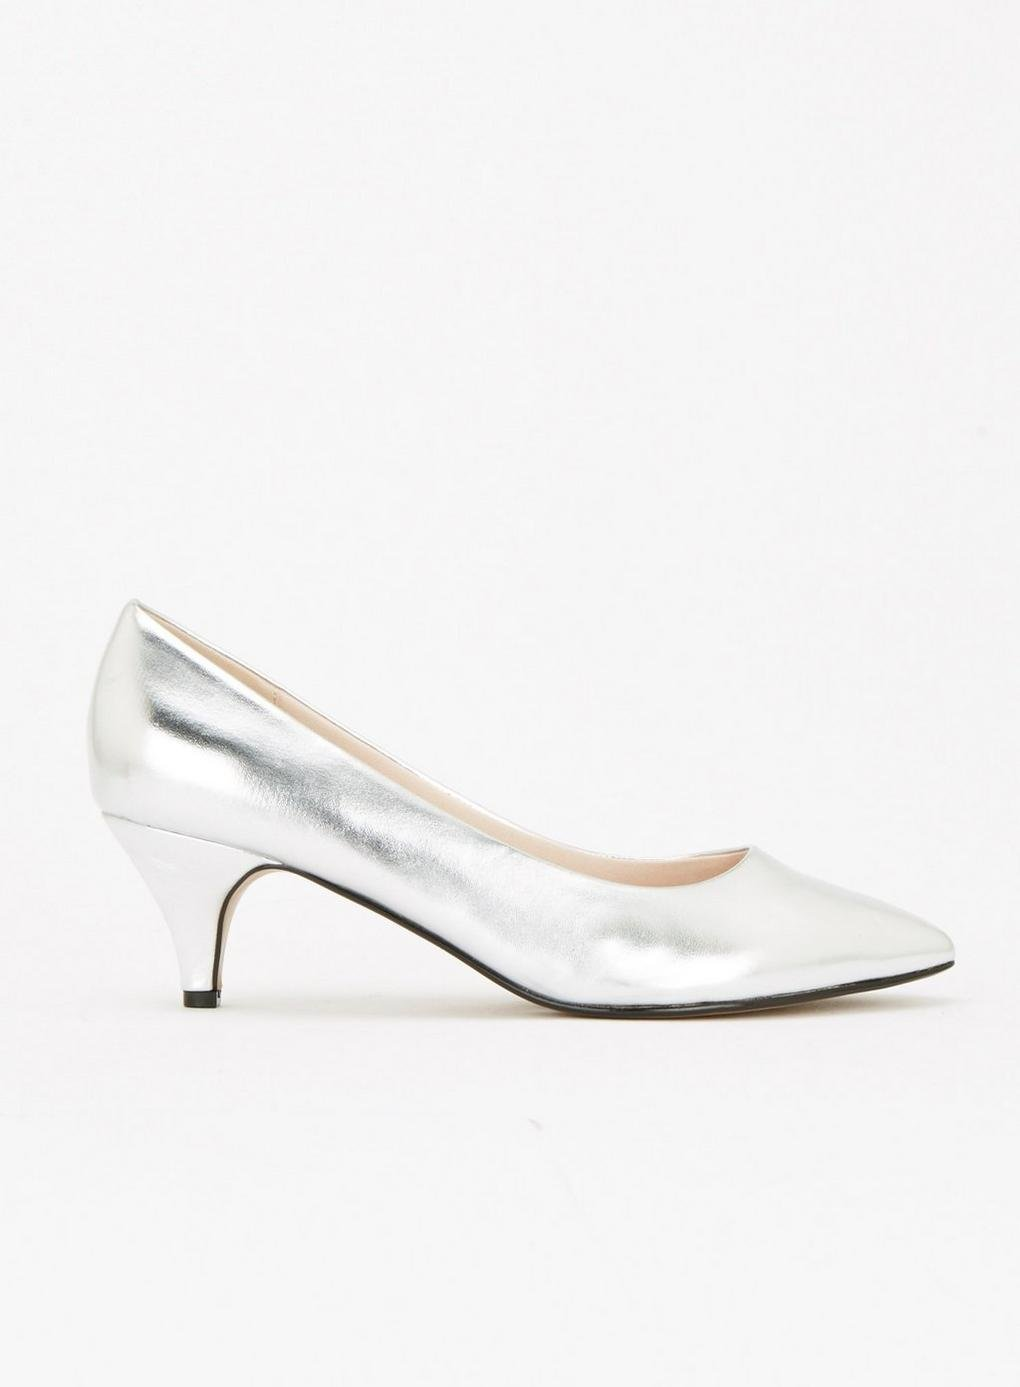 b10a67361c9 Evans Extra Wide Fit Silver Kitten Heel Court Shoes in Metallic - Lyst